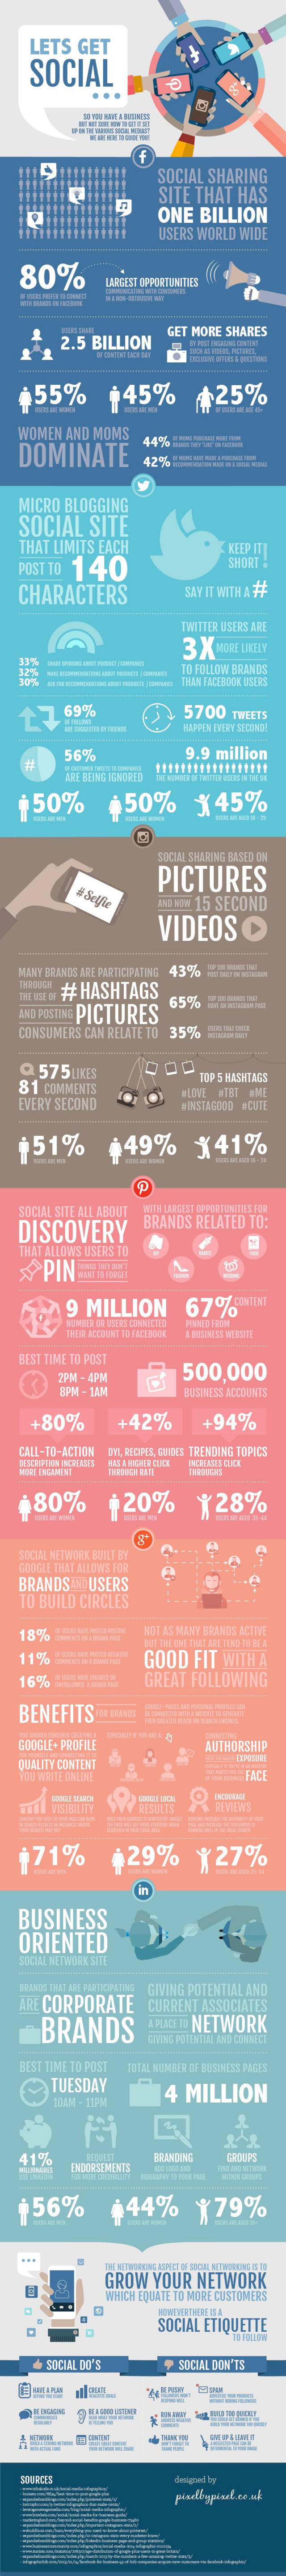 Social Media Made Simple: 12 Dos and Donts for Newbies #Infographic